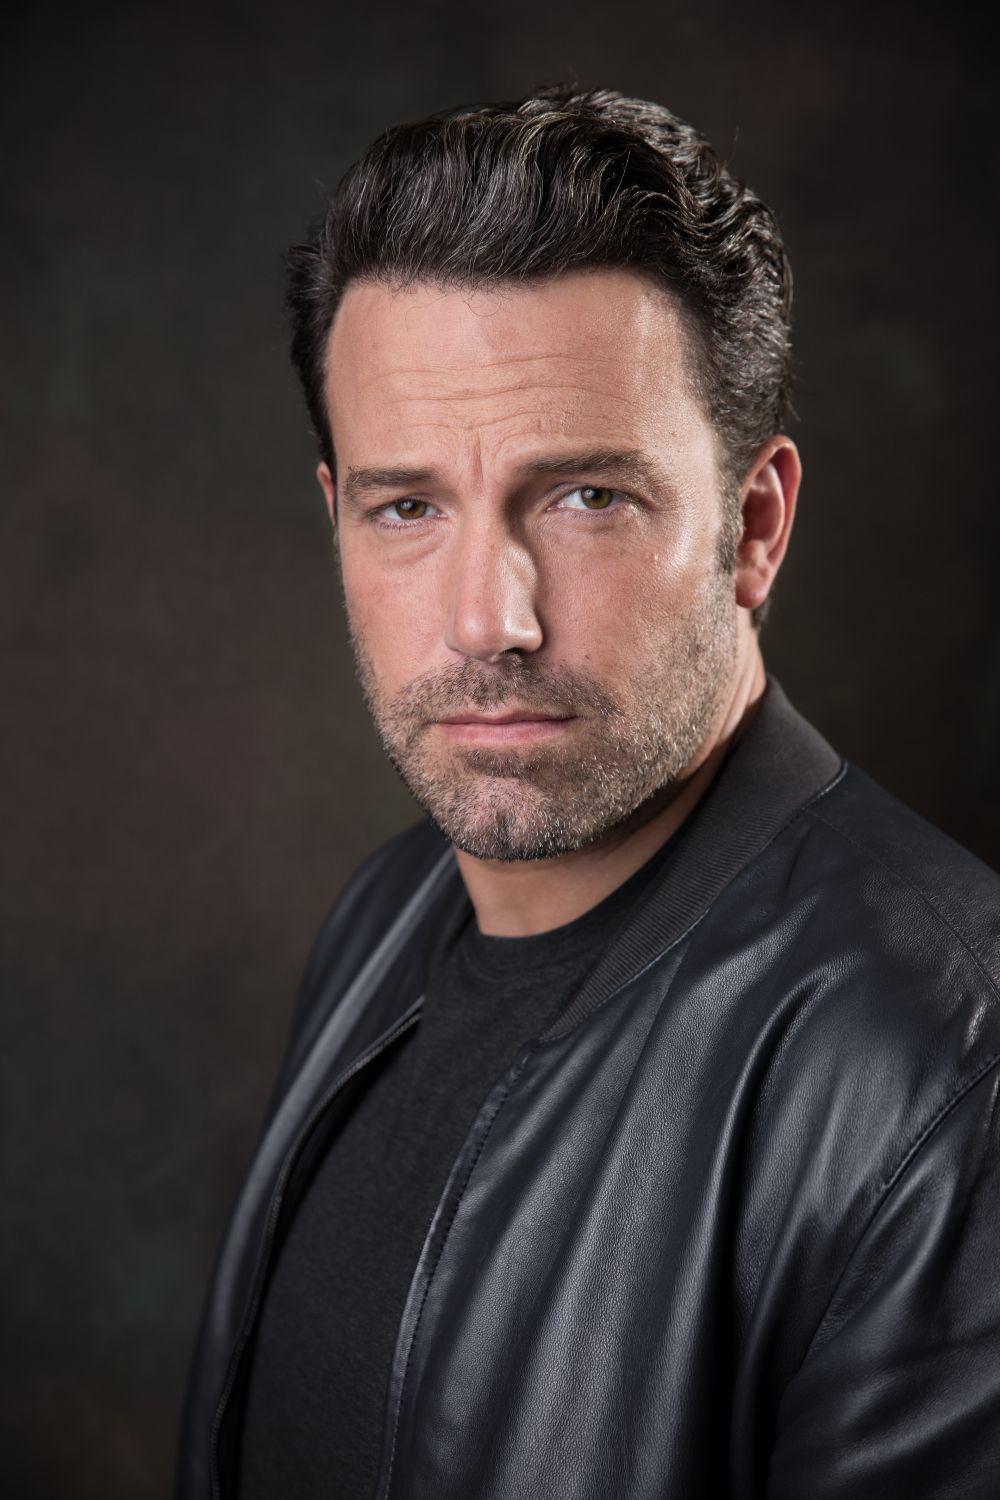 ben affleck 2017ben affleck batman, ben affleck 2016, ben affleck film, ben affleck movies, ben affleck twitter, ben affleck 2017, ben affleck height, ben affleck jennifer garner, ben affleck wife, ben affleck jennifer lopez, ben affleck wiki, ben affleck instagram, ben affleck and matt damon, ben affleck young, ben affleck vk, ben affleck gif, ben affleck film 2016, ben affleck расплата, ben affleck live by night, ben affleck imdb